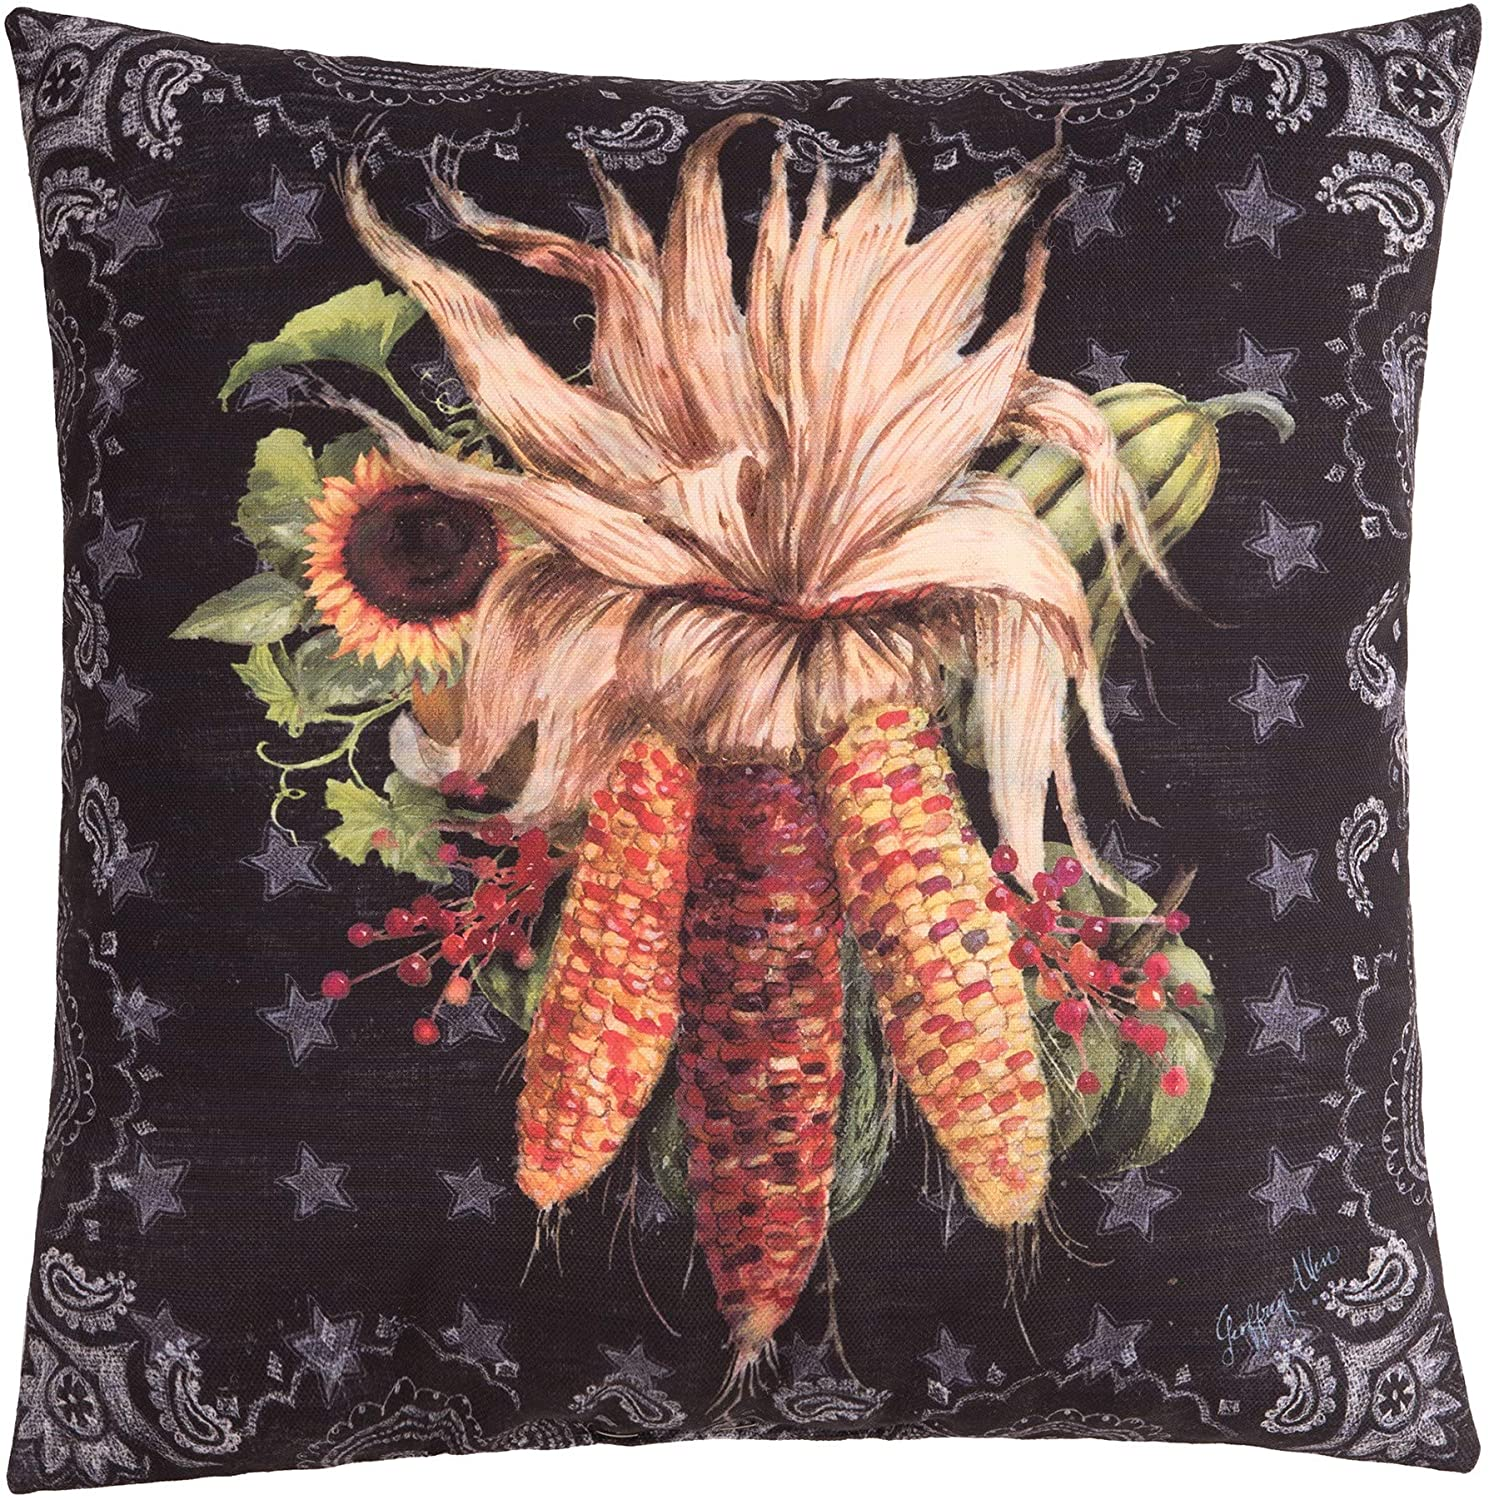 C&F Home Chalk Corn Pillow Fall Autumn Harvest Decorative Throw Pillow for Couch Chair Living Room Bedroom 18 x 18 Pillow Black Corn